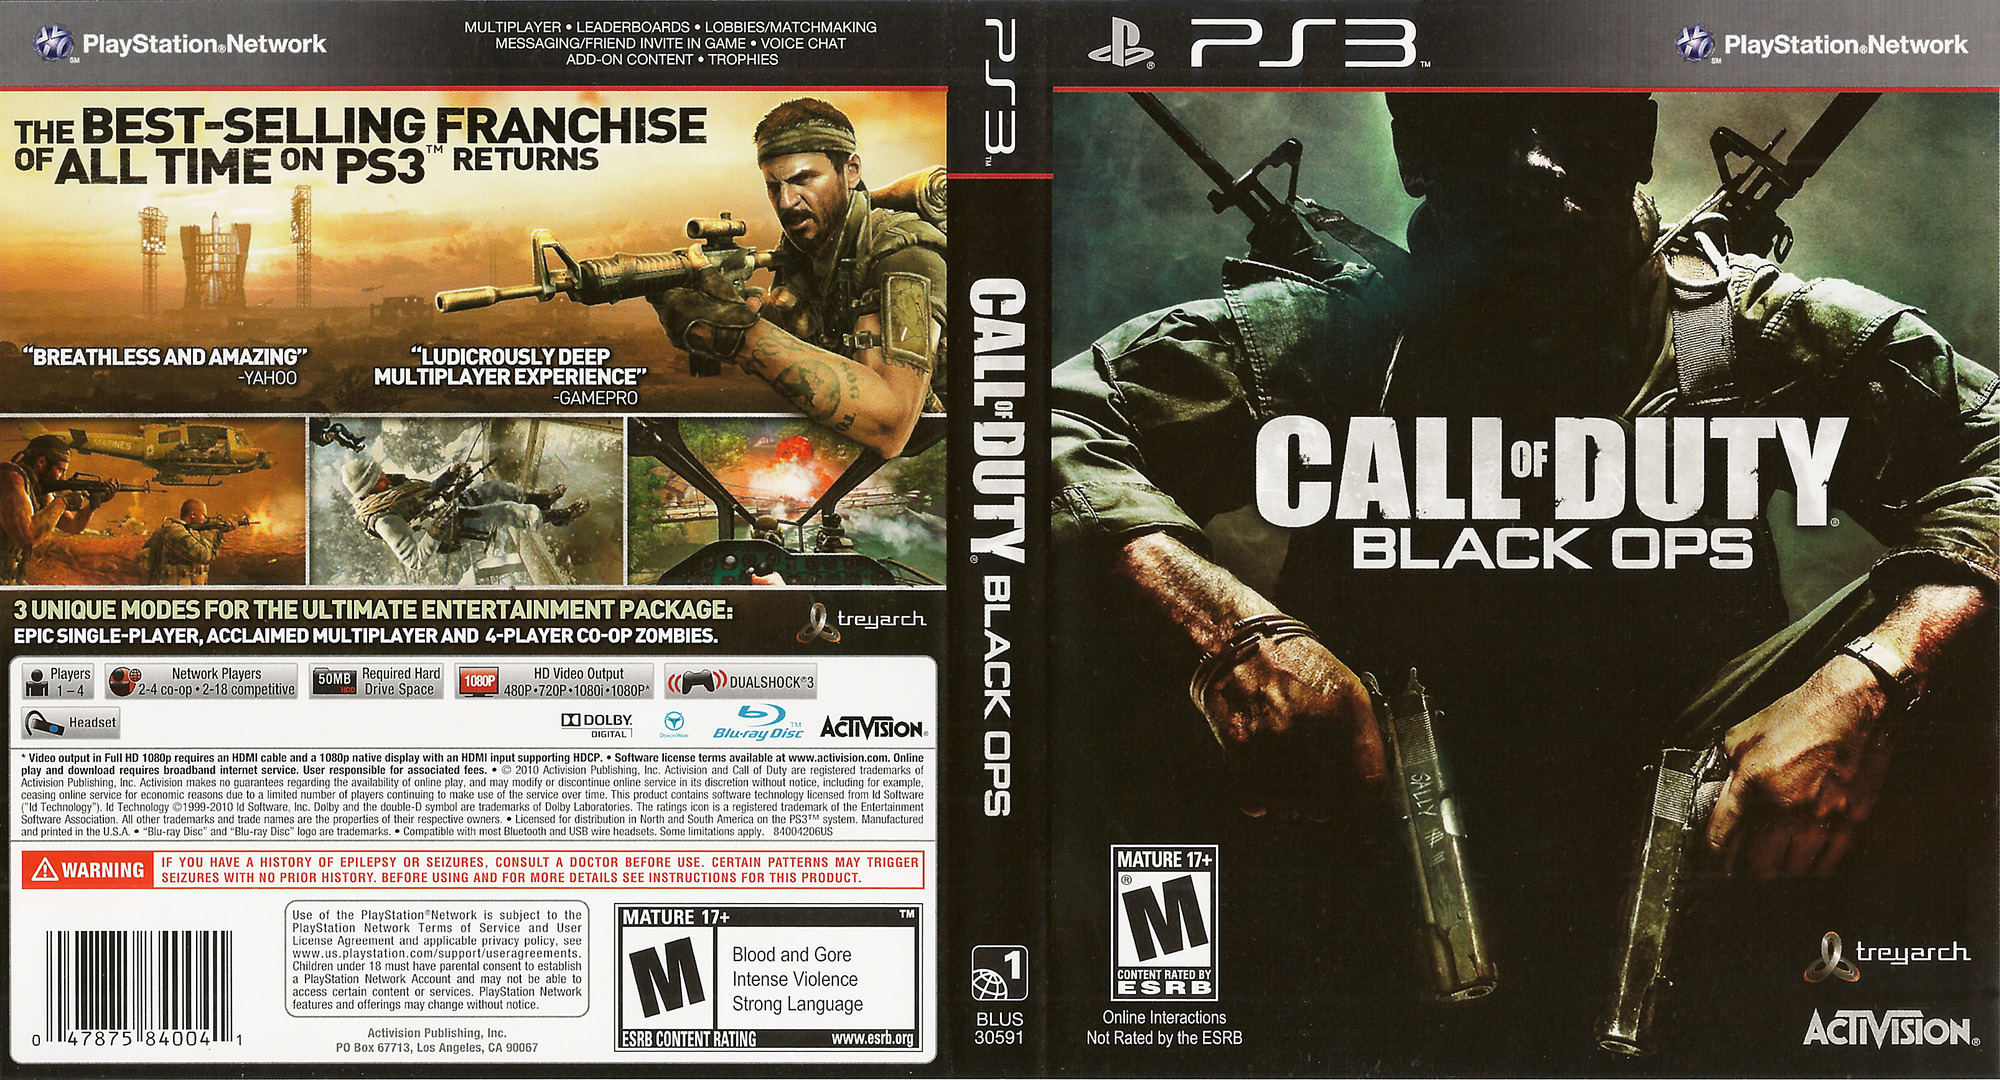 Blus30591 Call Of Duty Black Ops